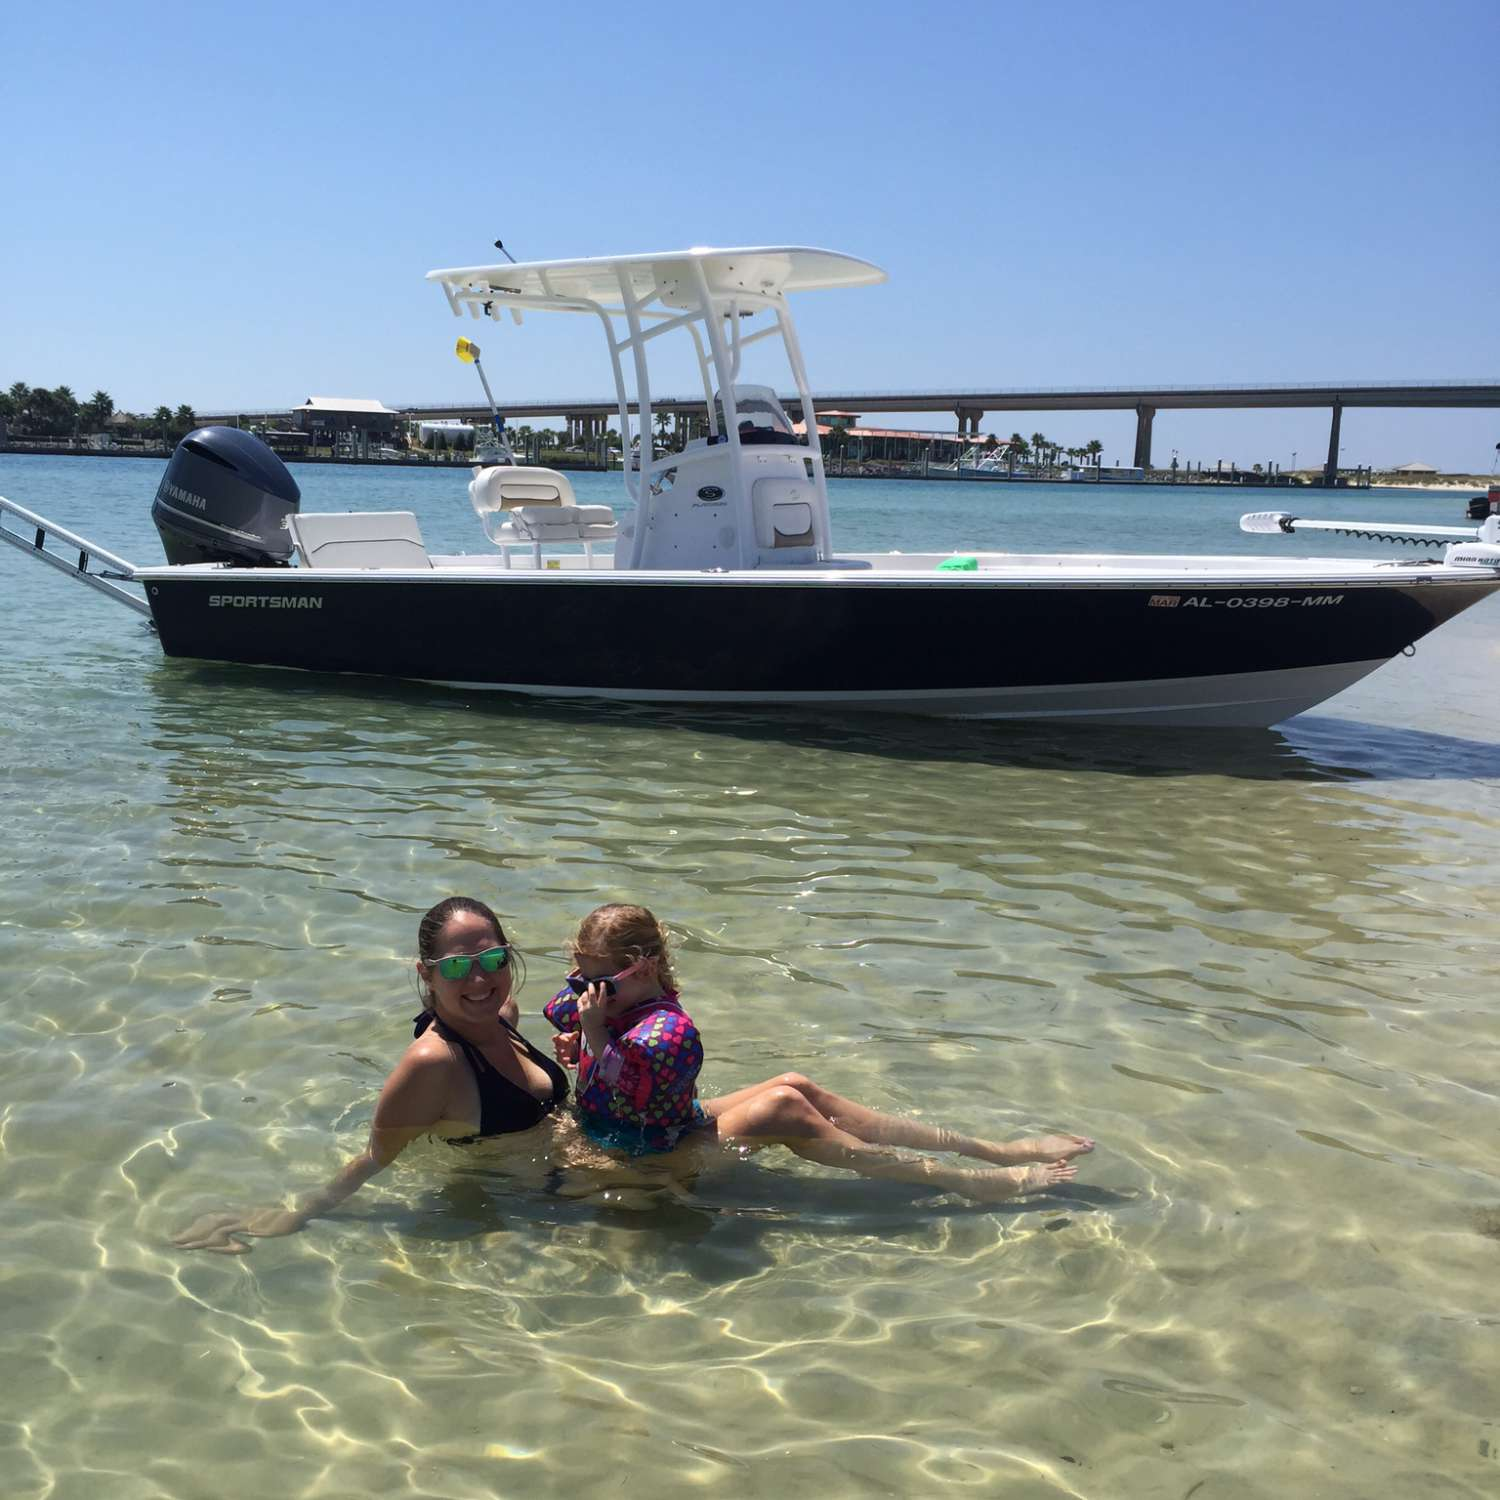 Title: My Beautiful Girls - On board their Sportsman Masters 247 Bay Boat - Location: Mobile, Alabama. Participating in the Photo Contest #SportsmanMarch2016